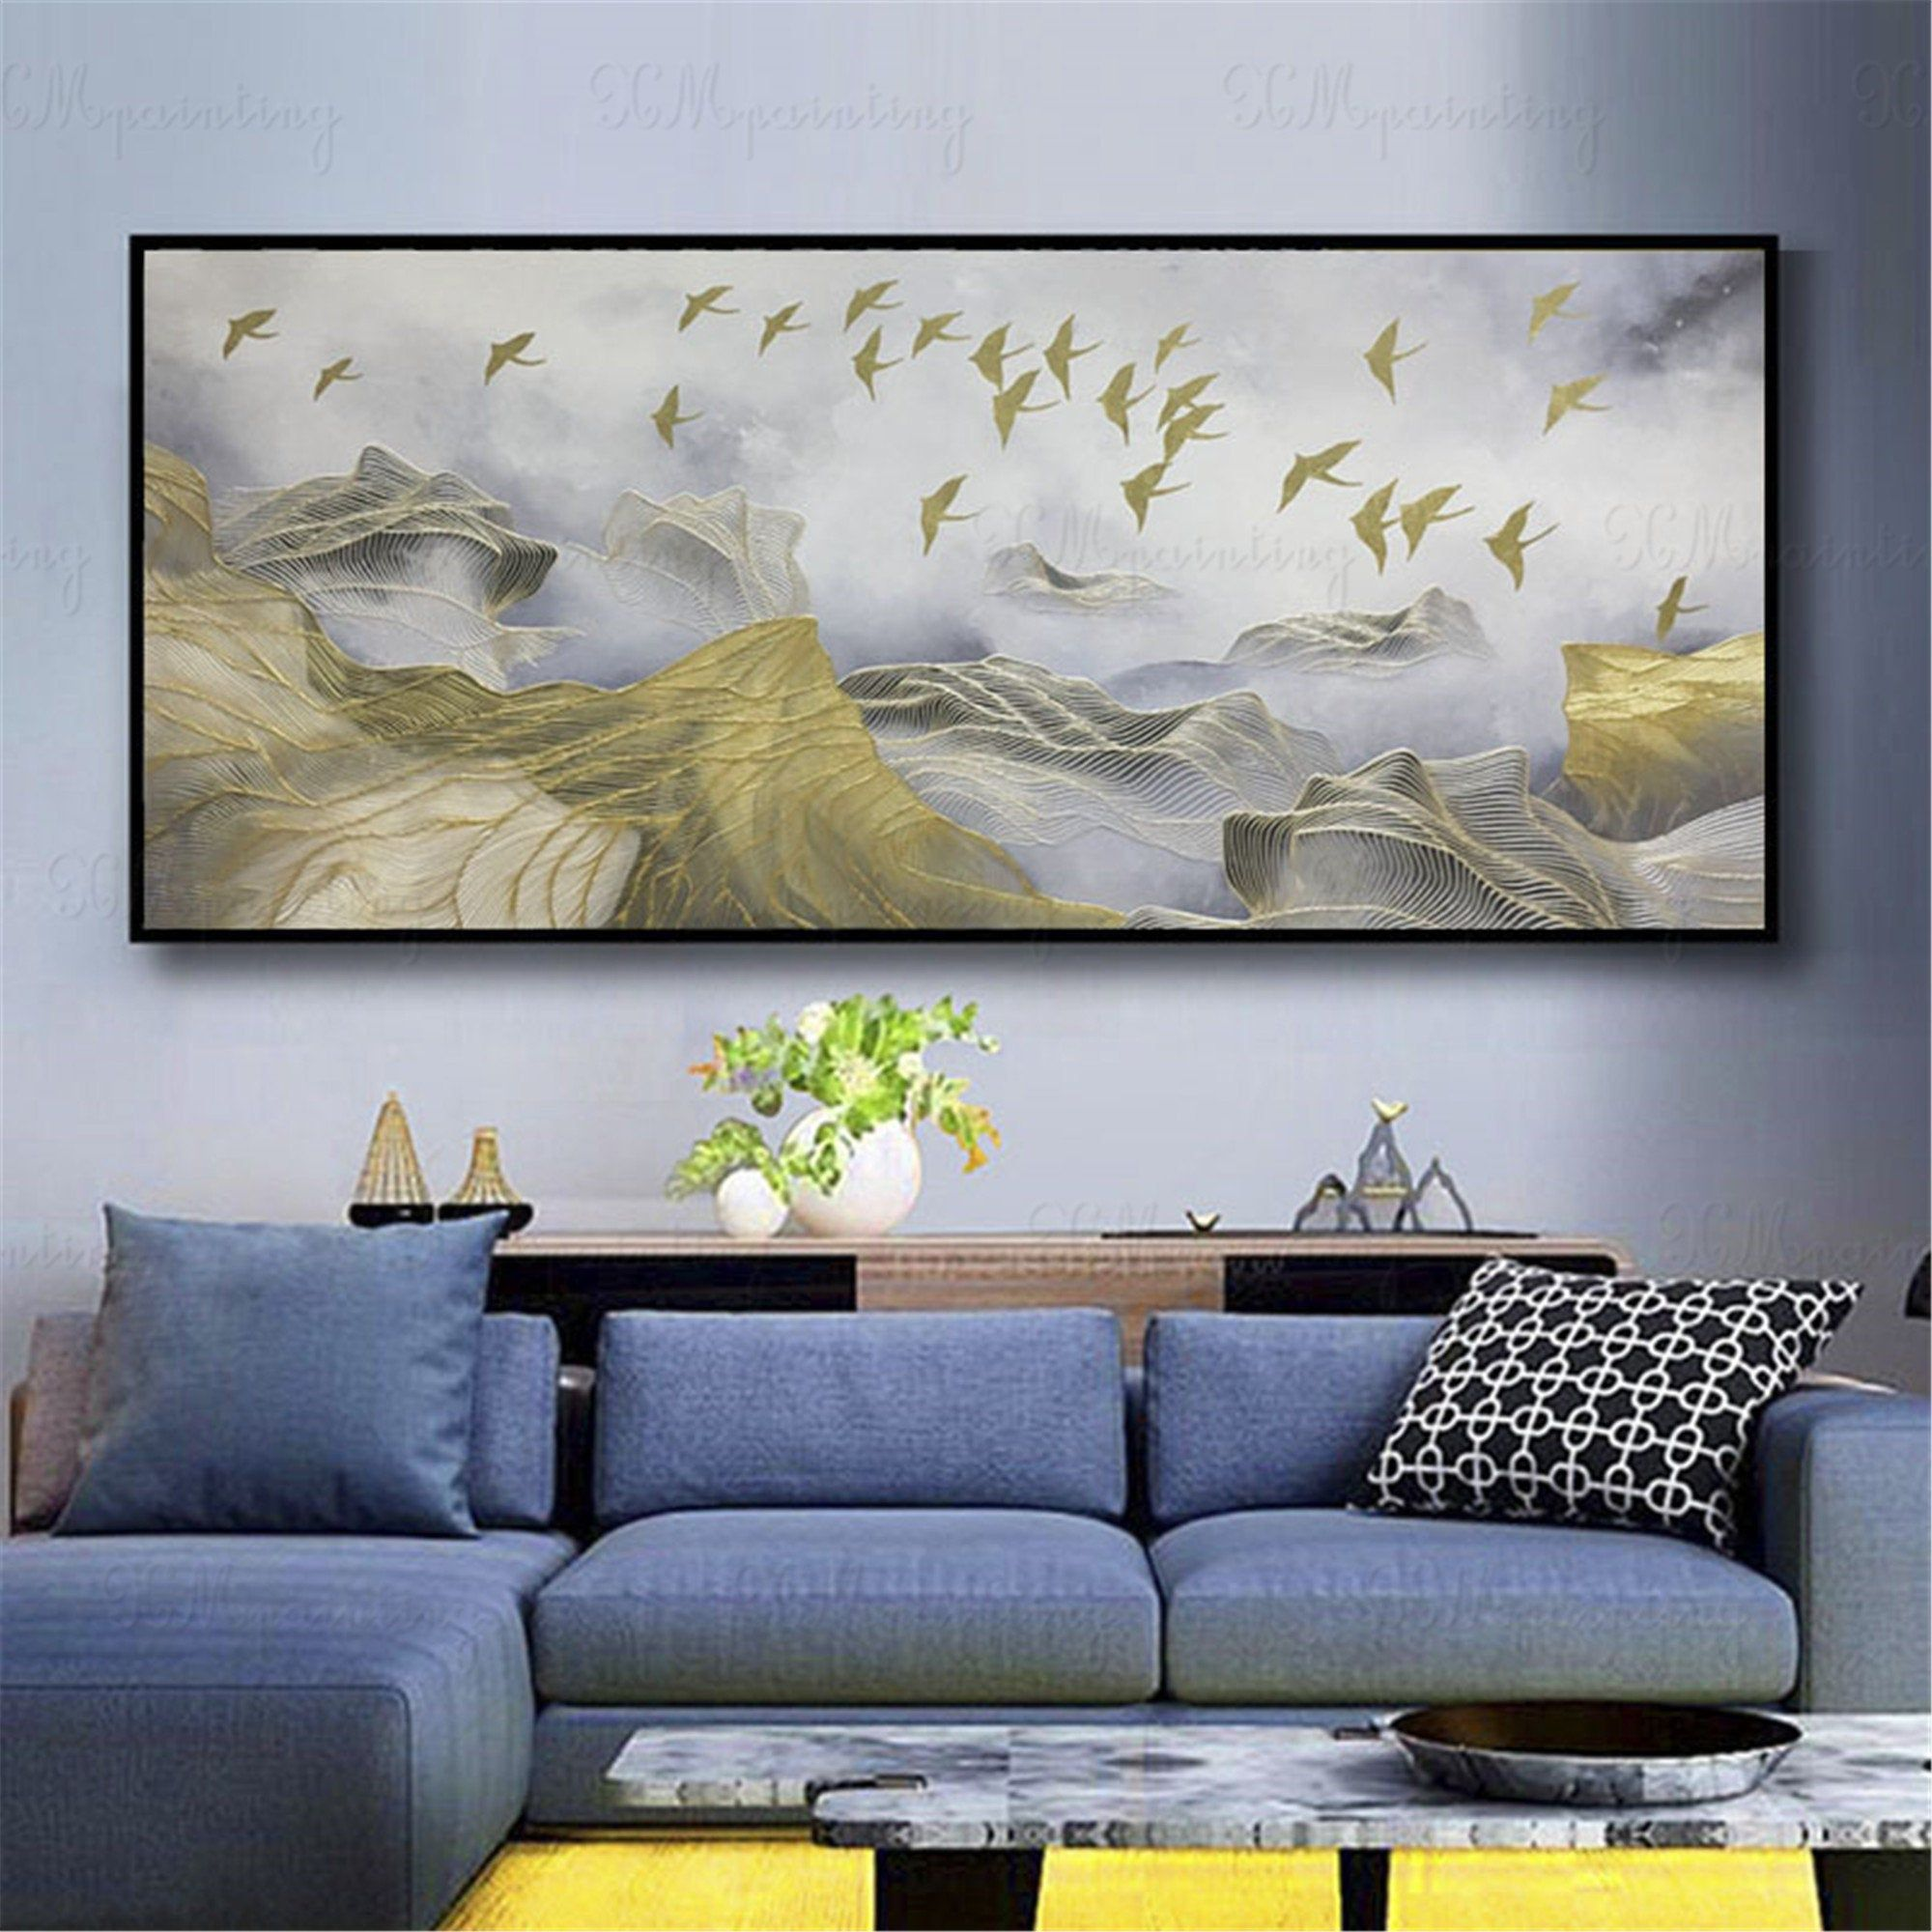 Gold Art Abstract Painting Wall Pictures For Living Room Wall Decor Home Decor Bedroom Gold Lines Gold Leaf Birds Original Acrylic Canvas Living Room Pictures Wall Decor Living Room Abstract Canvas Wall art for the living room